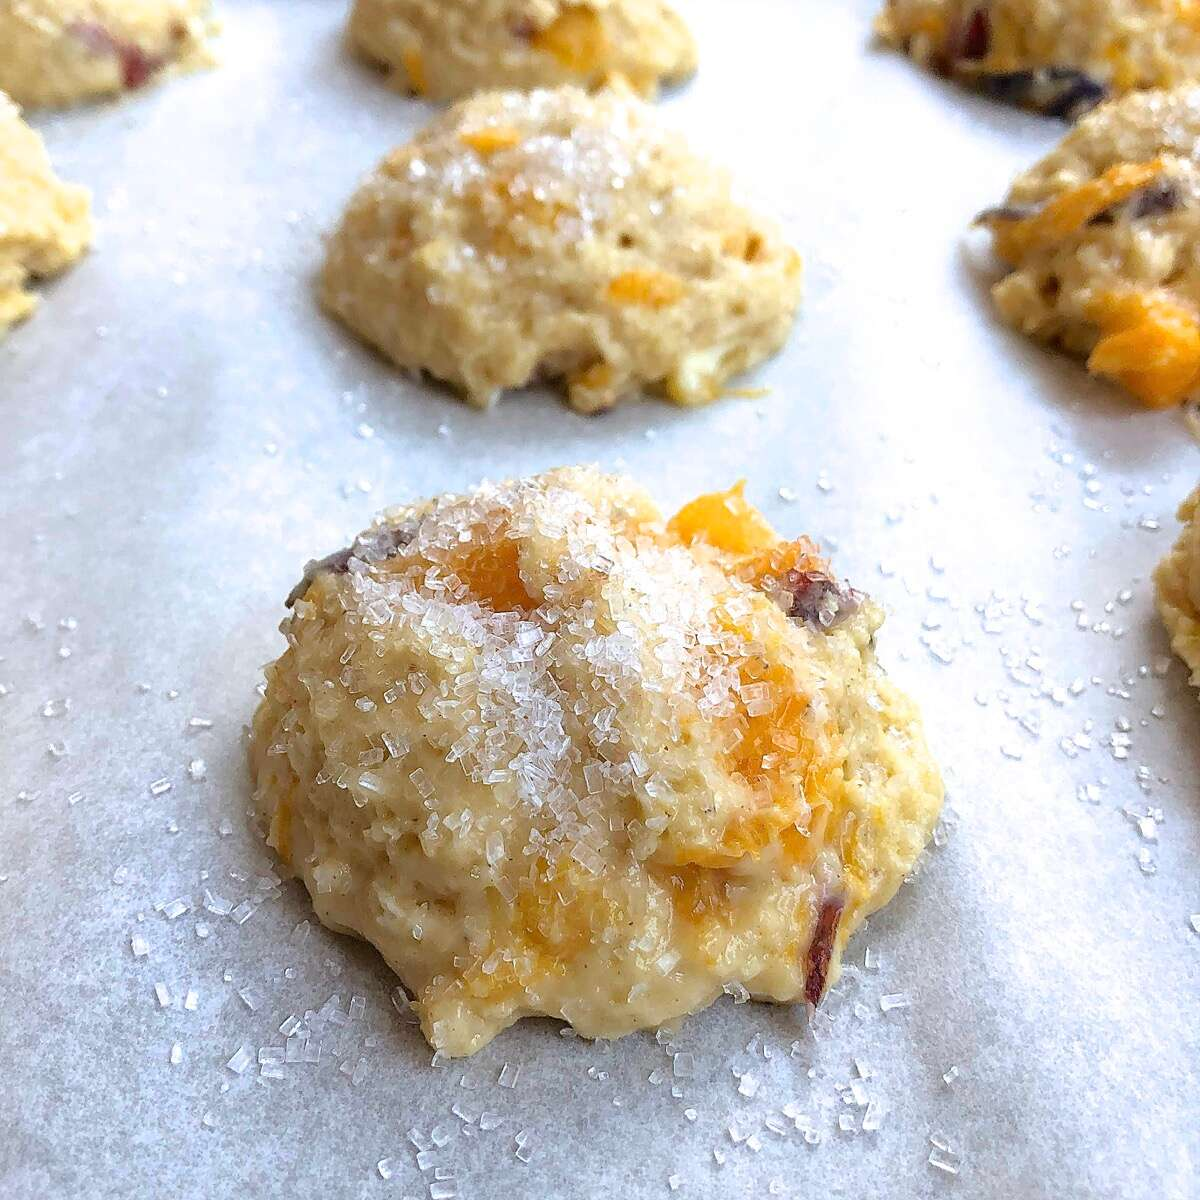 An unbaked peach scone garnished with coarse white sparkling sugar, ready to be baked.